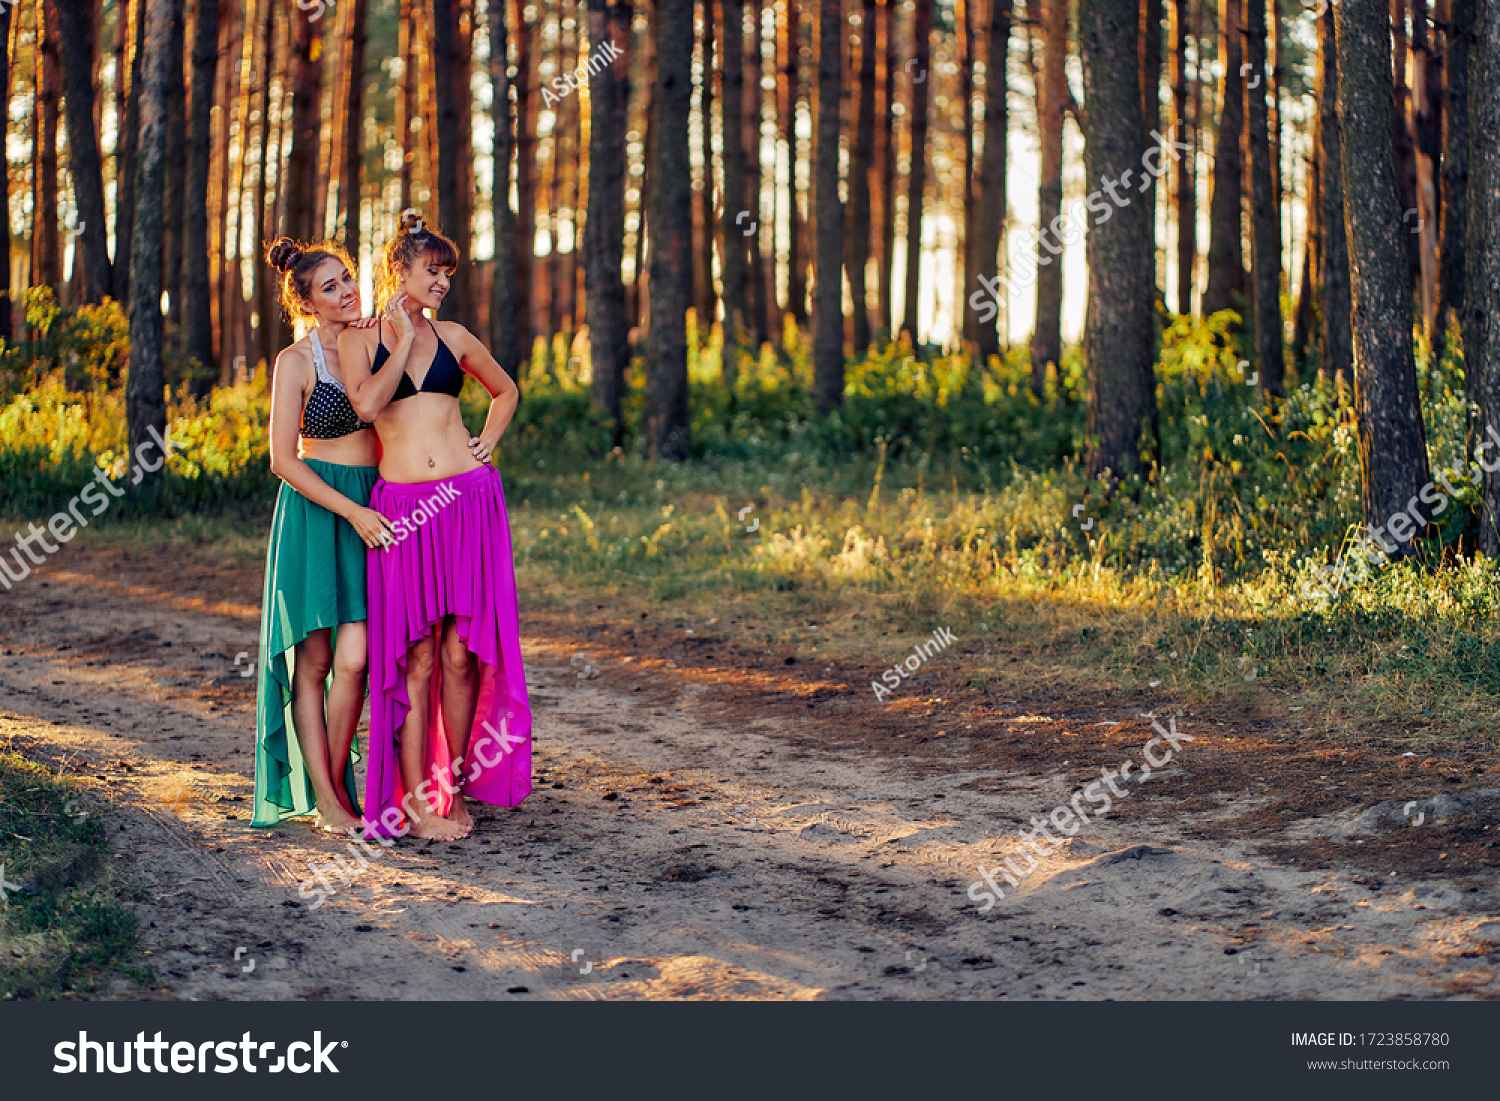 https://image.shutterstock.com/z/stock-photo-two-girls-in-bathing-suits-and-long-dresses-in-the-forest-at-sunset-1723858780.jpg